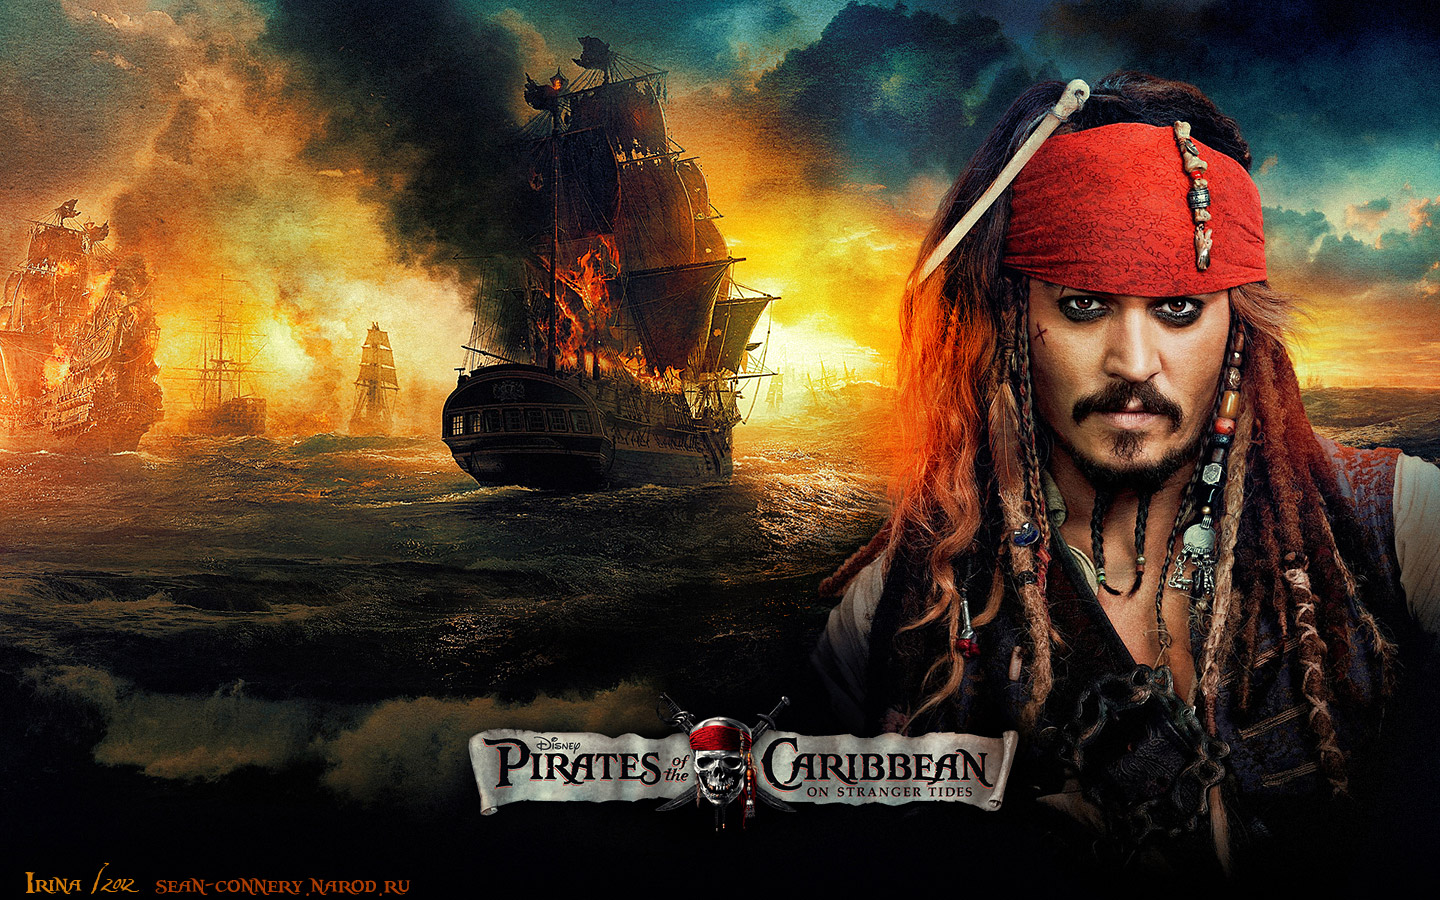 Пираты Карибского моря. На странных берегах (Pirates of the Caribbean. On Stranger Tides), Джонни Депп (Johnny Depp)  Wallpaper